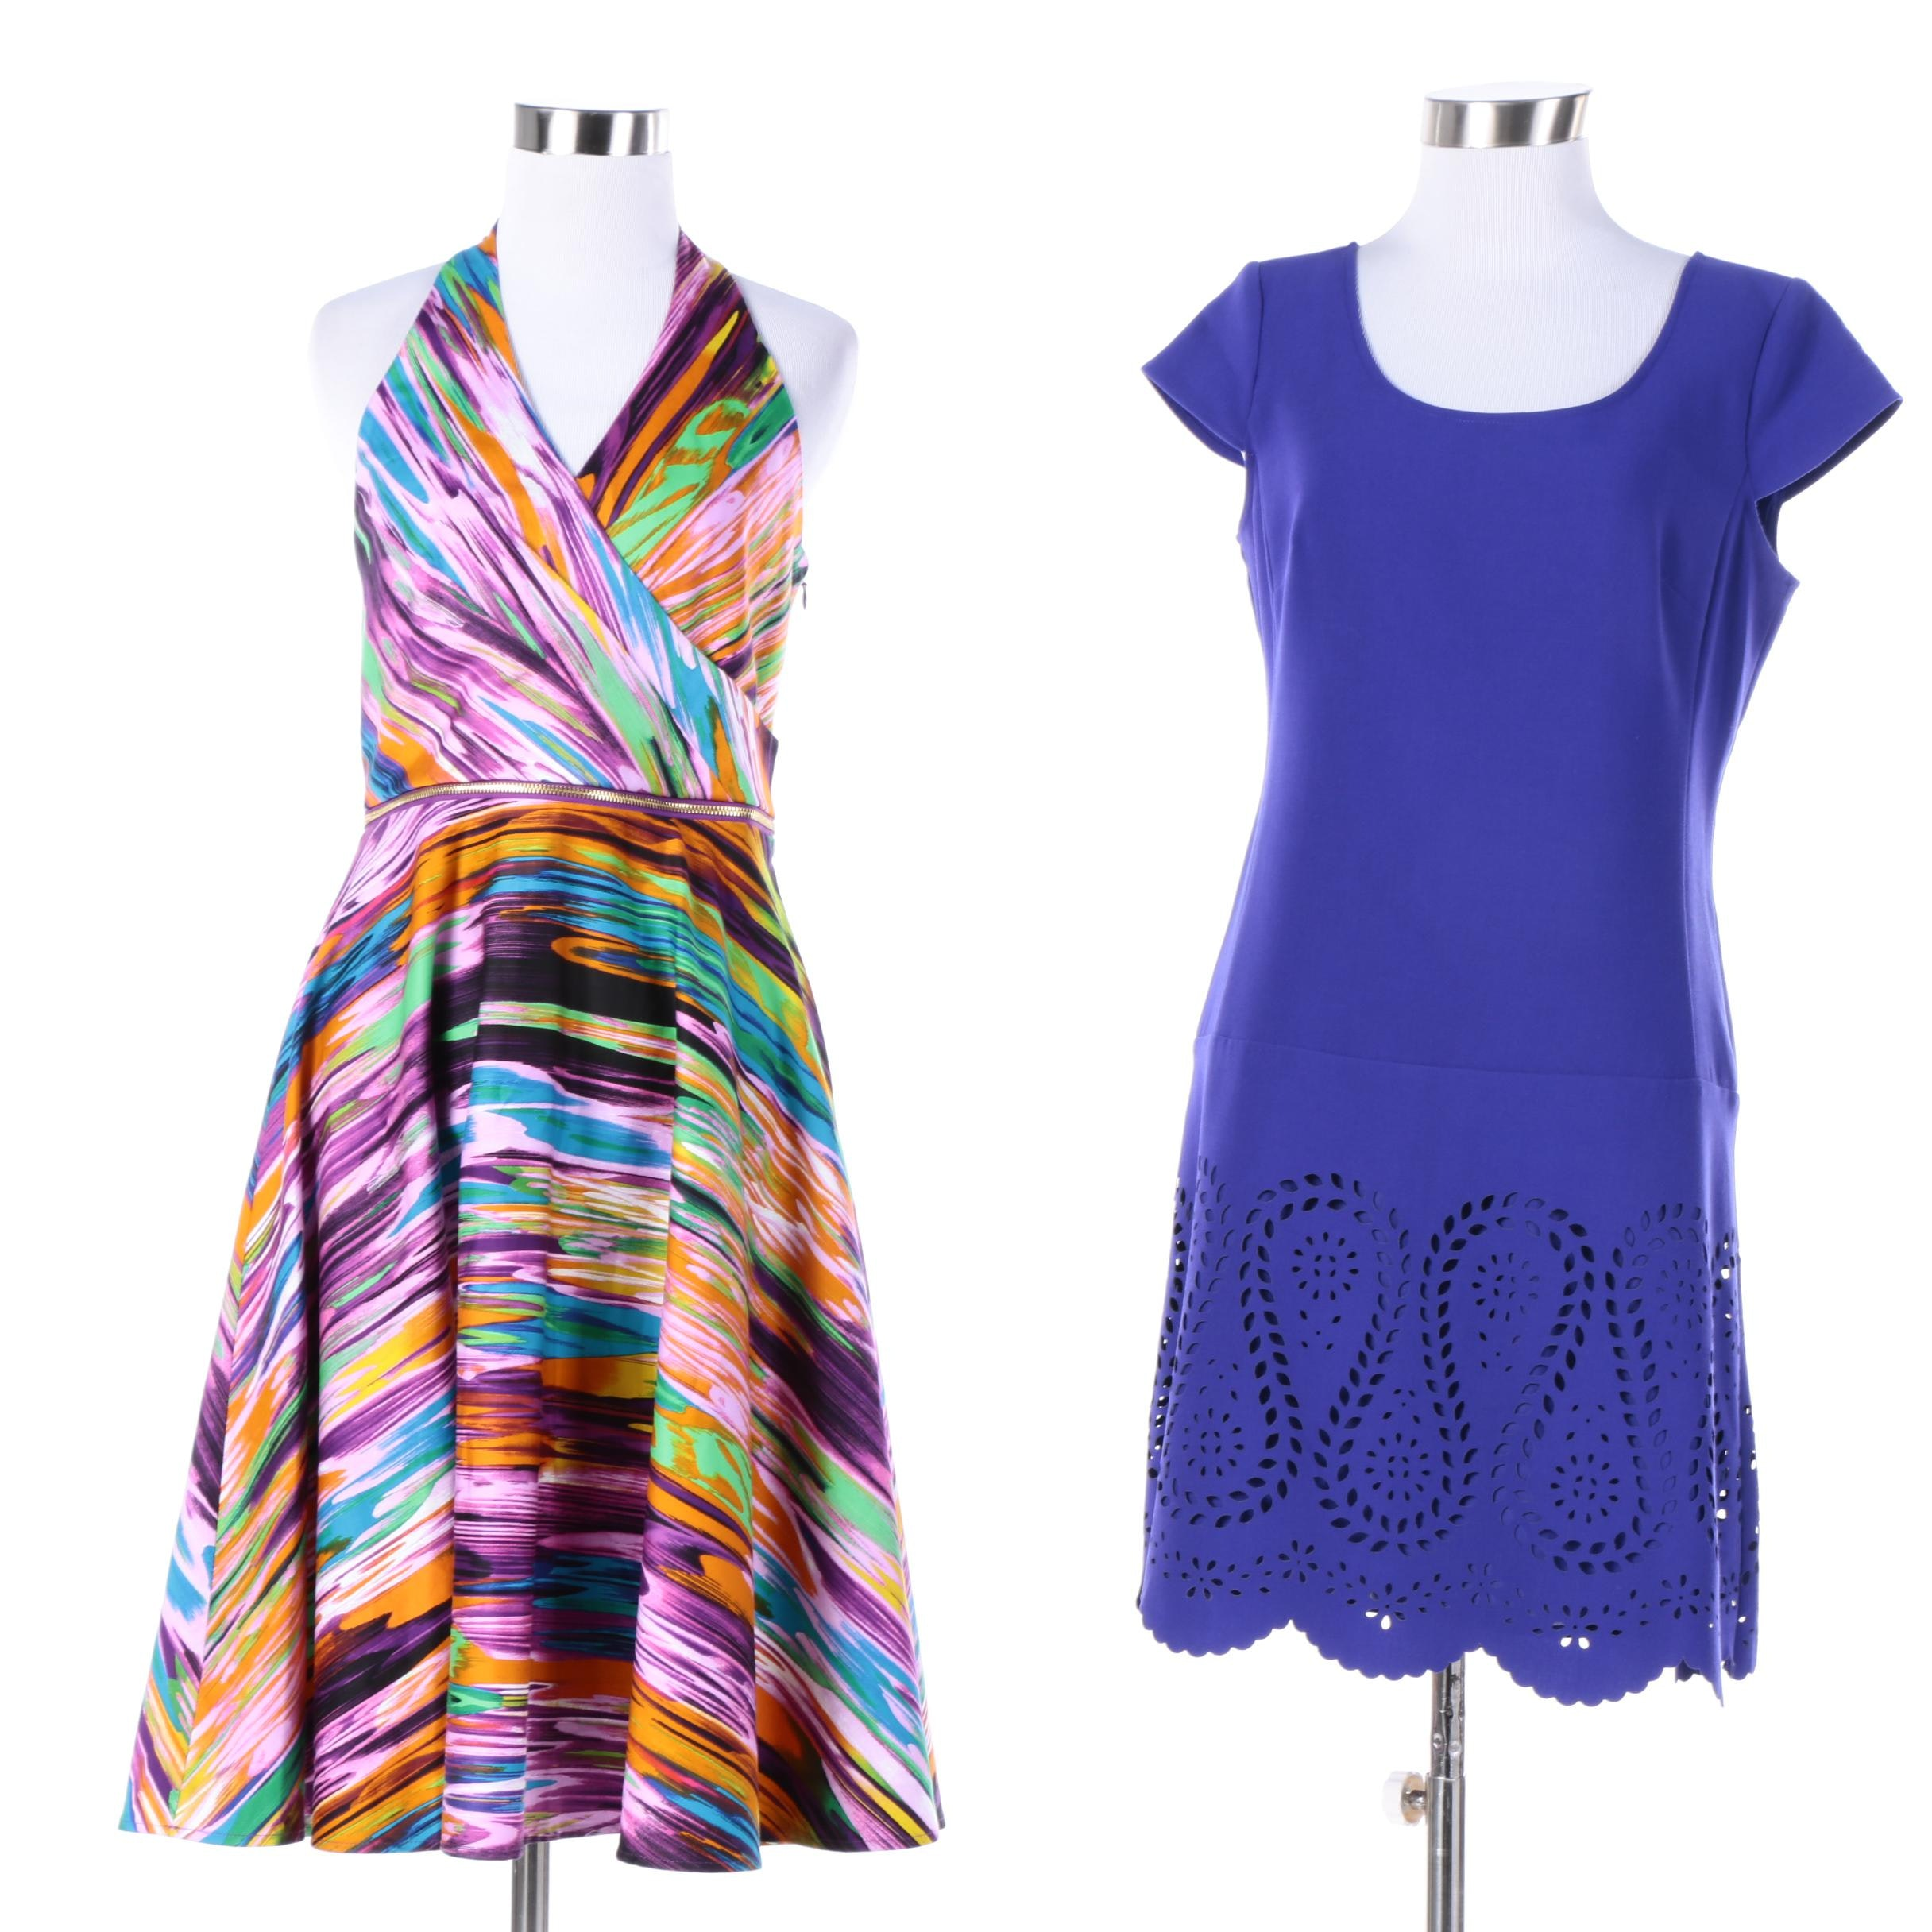 Women's Calvin Klein and Ann Taylor Dresses